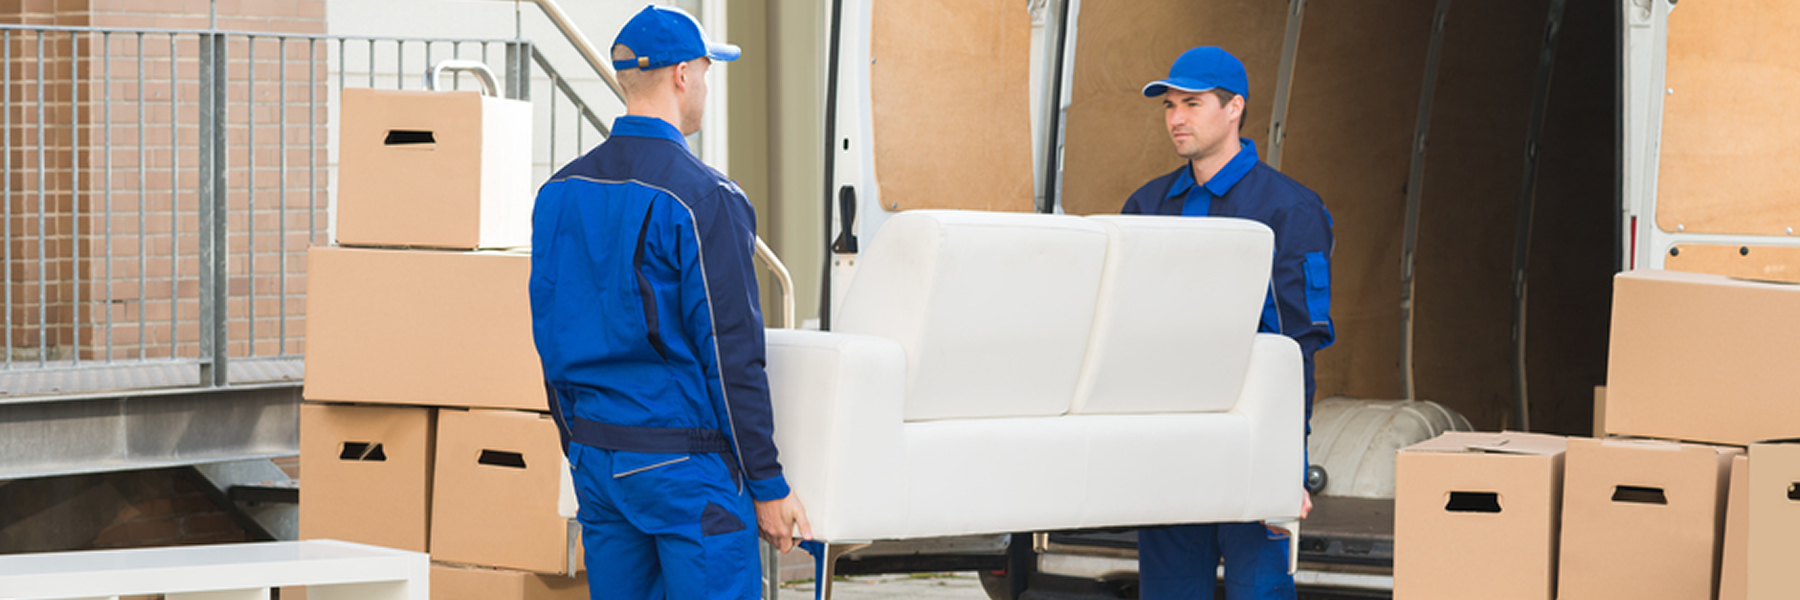 Phoenix Reliable Movers